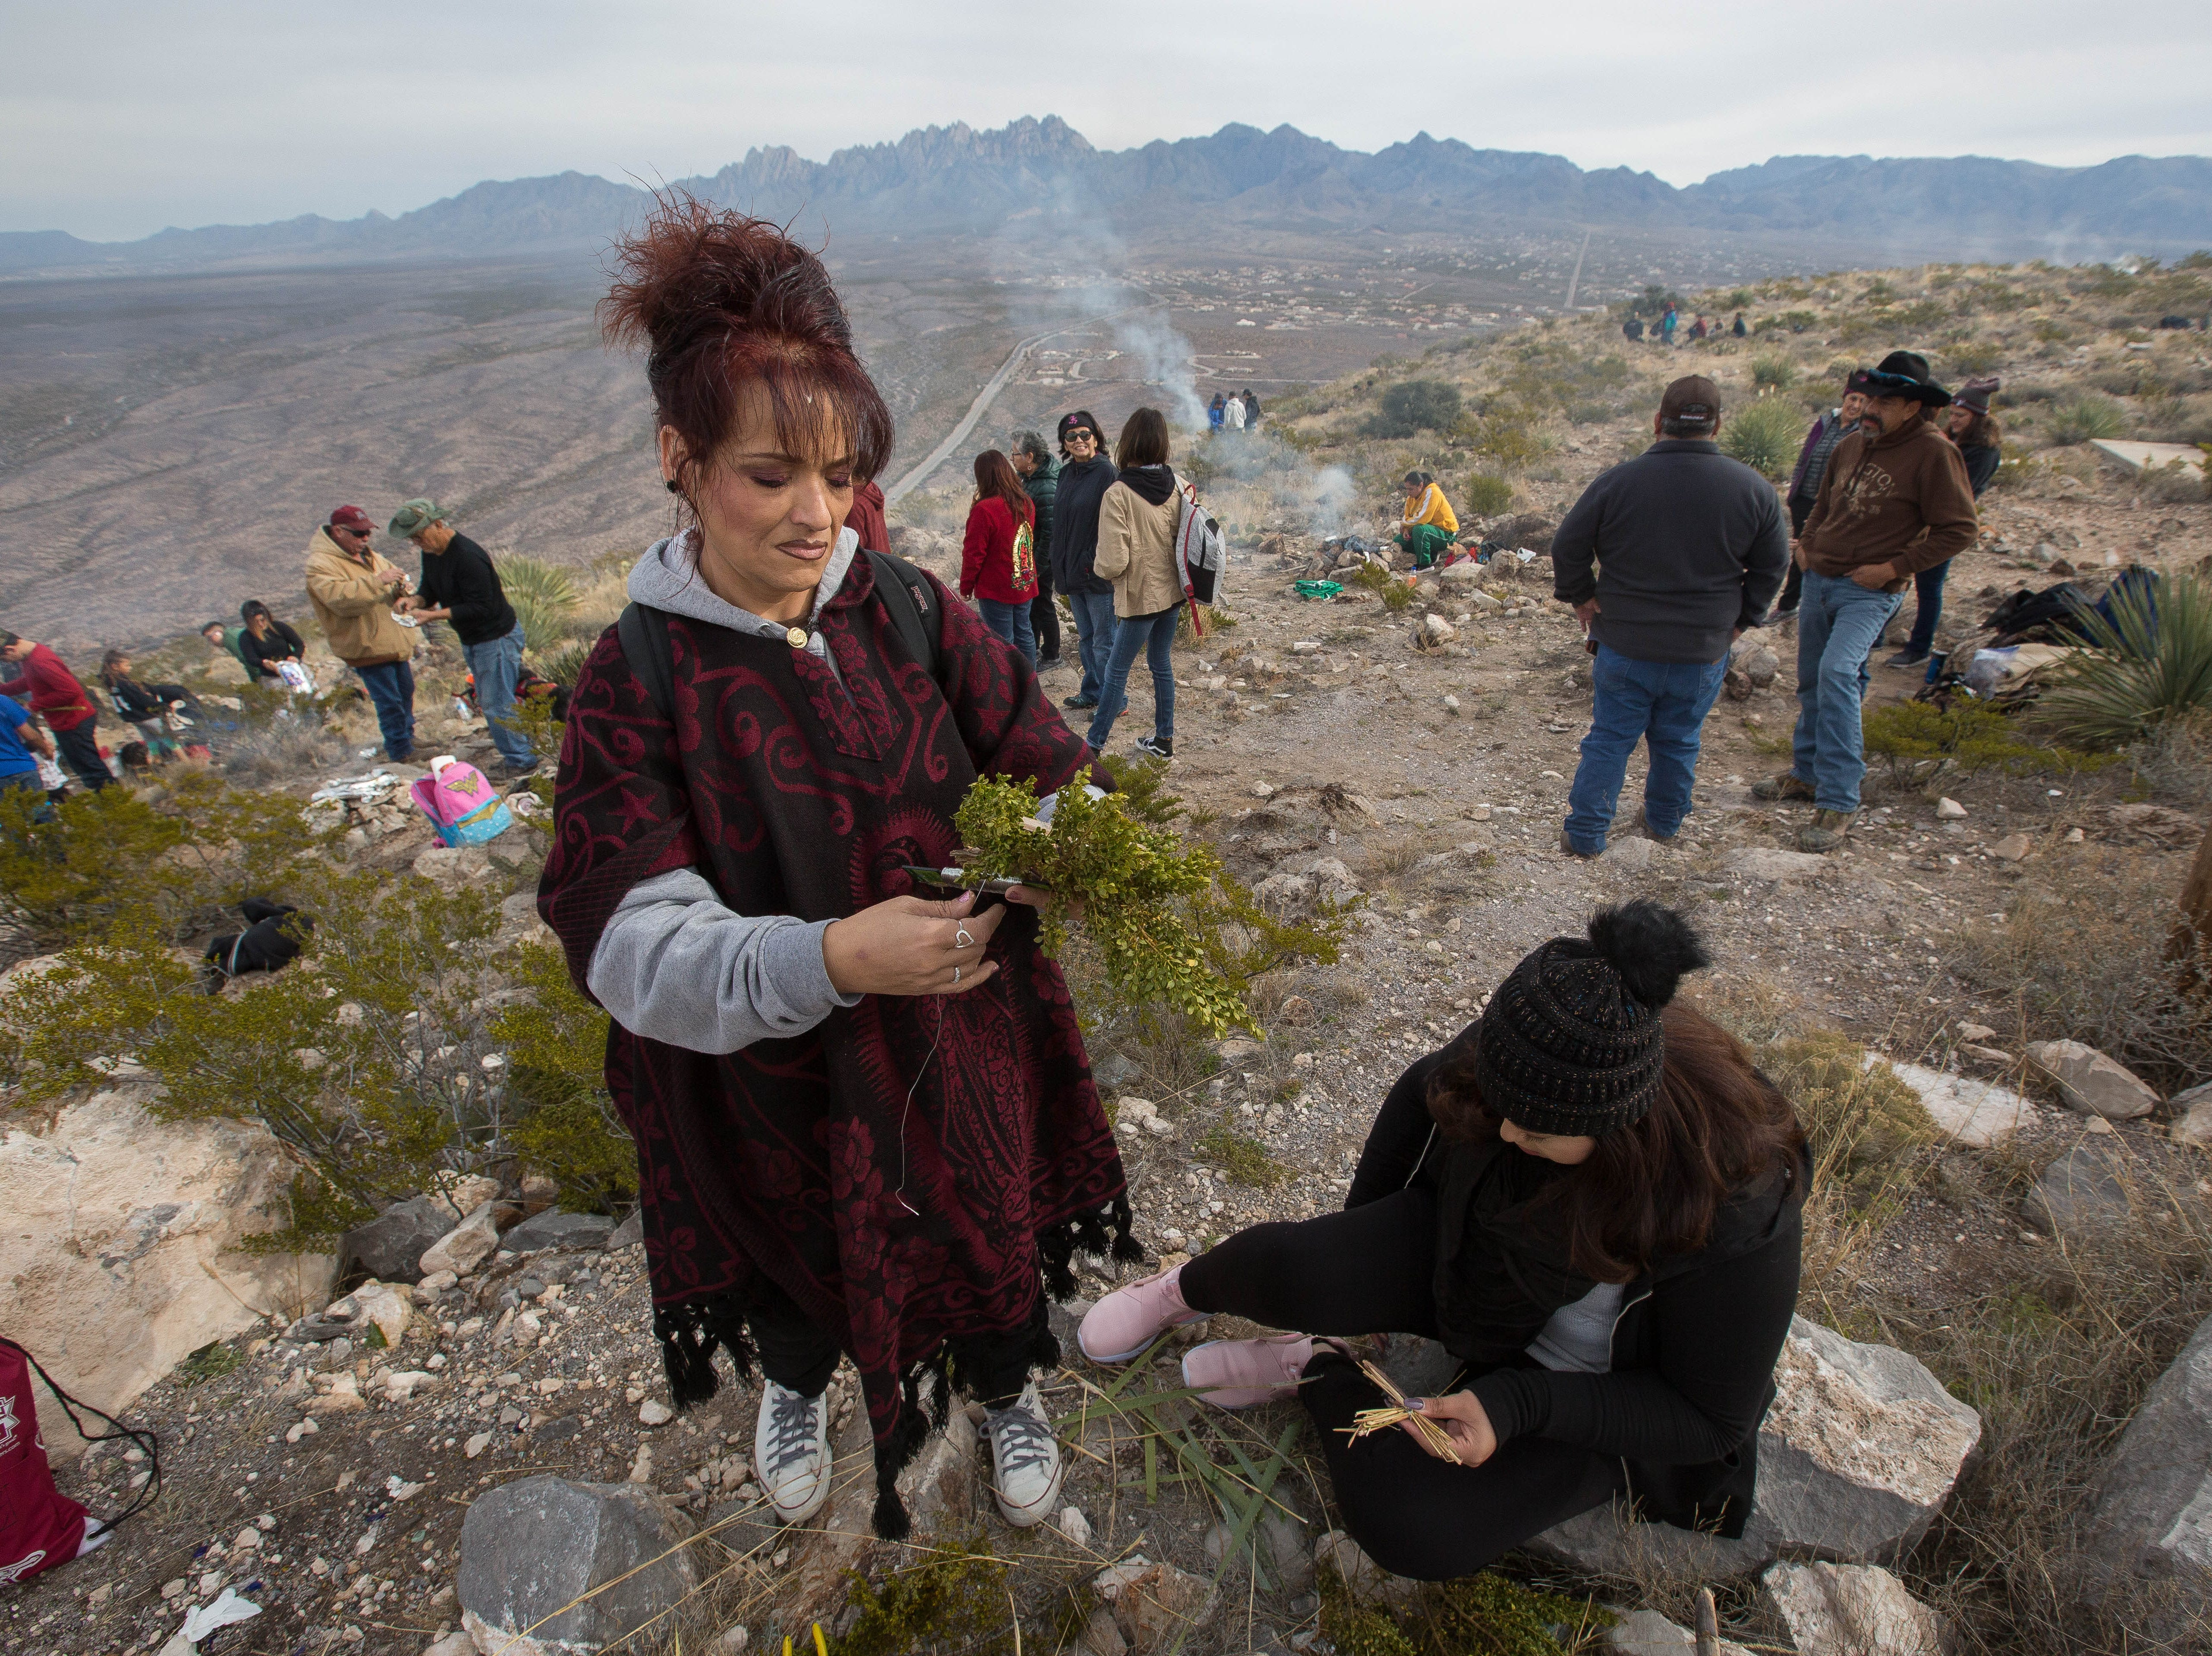 Follow the pilgrims' journey from pueblo to mountaintop